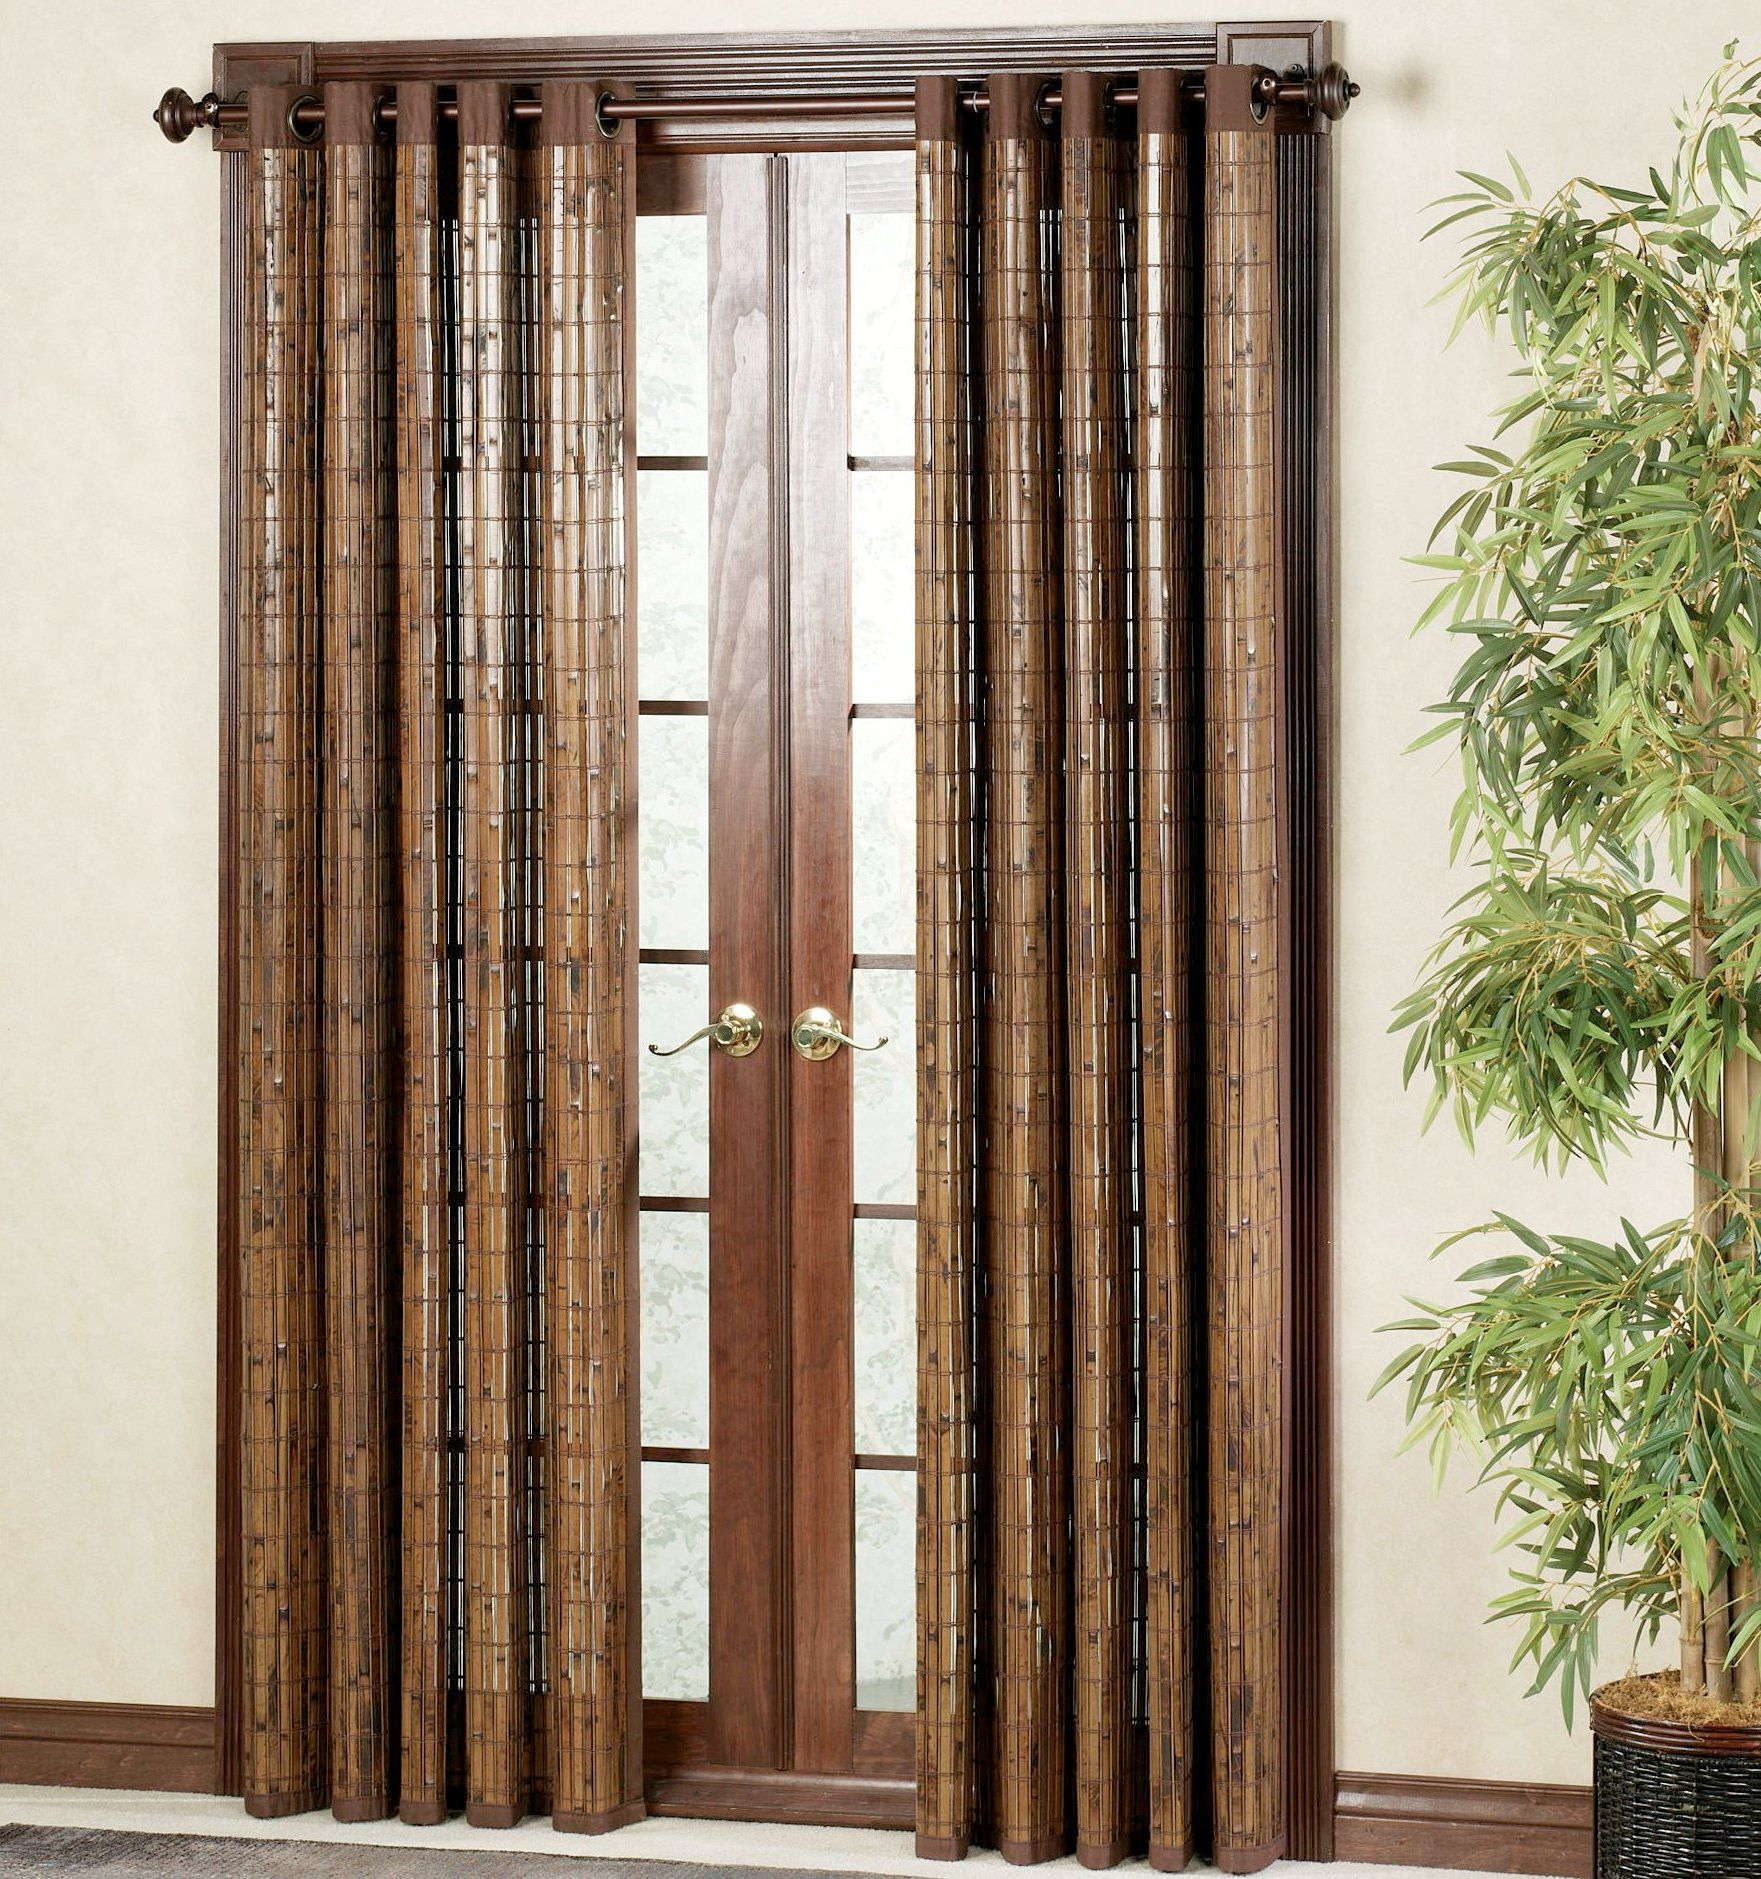 Sliding bamboo door curtains